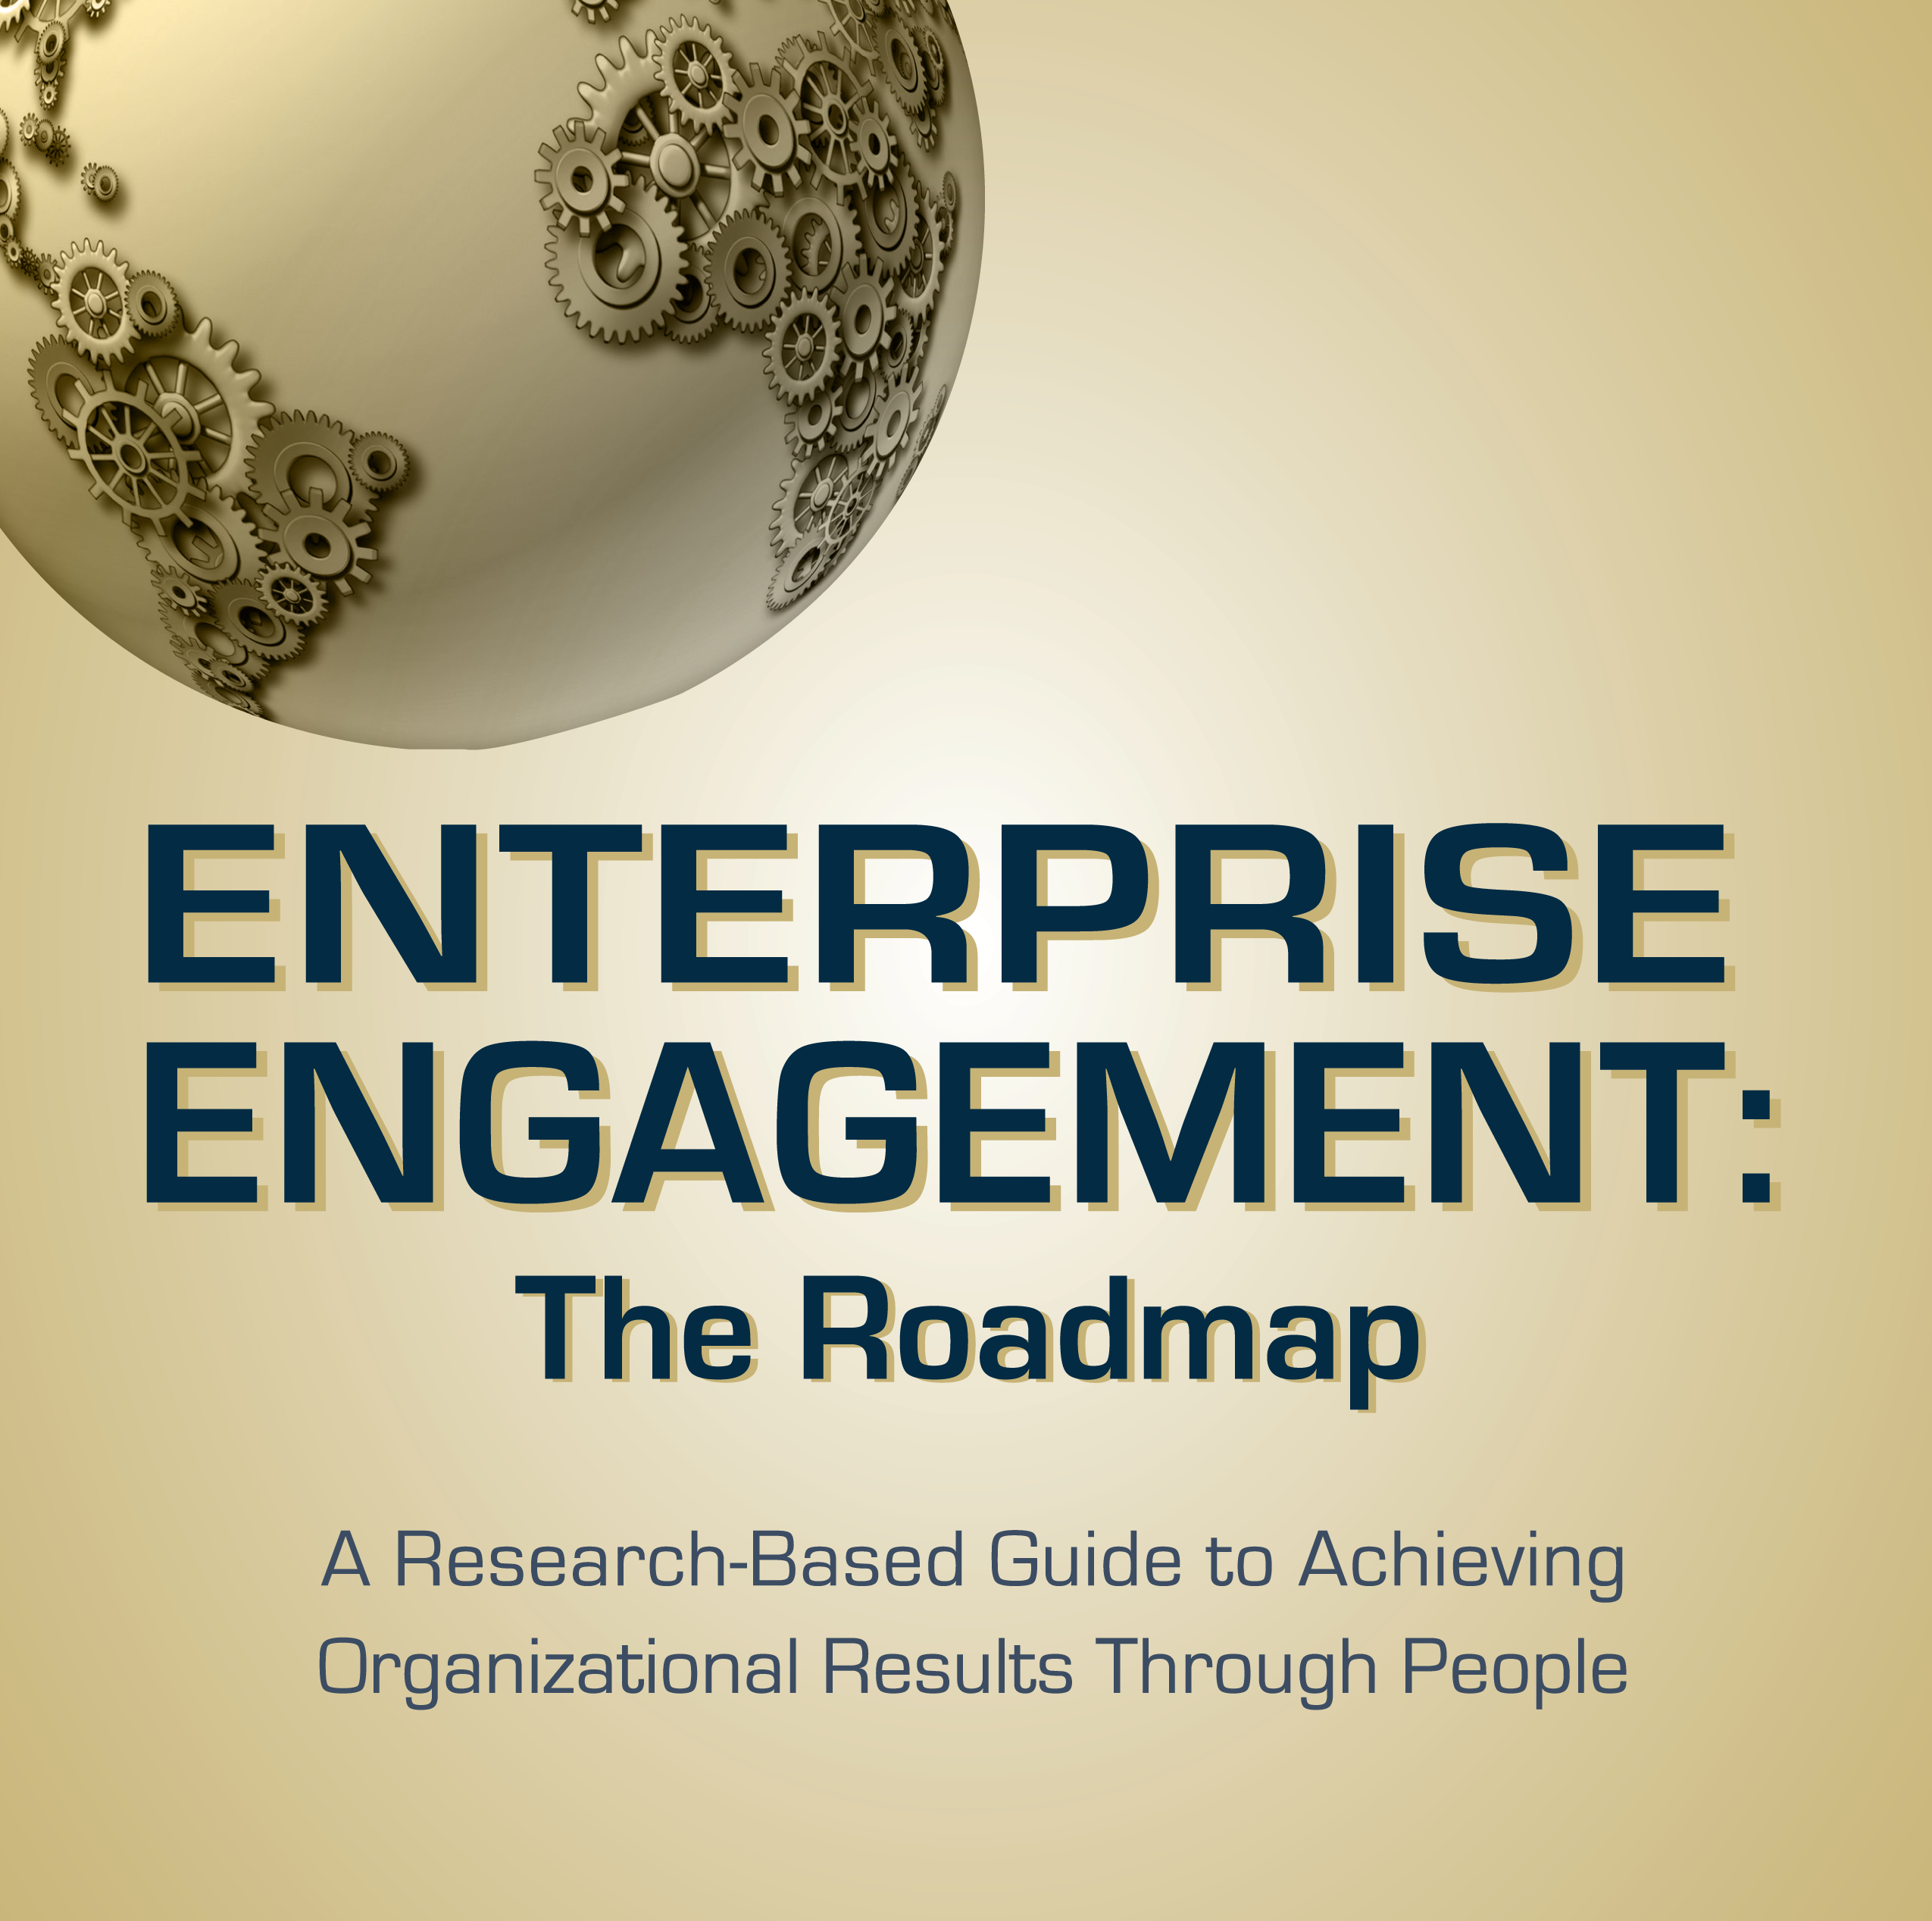 Enterprise Engagement: The Roadmap, 3rd Edition